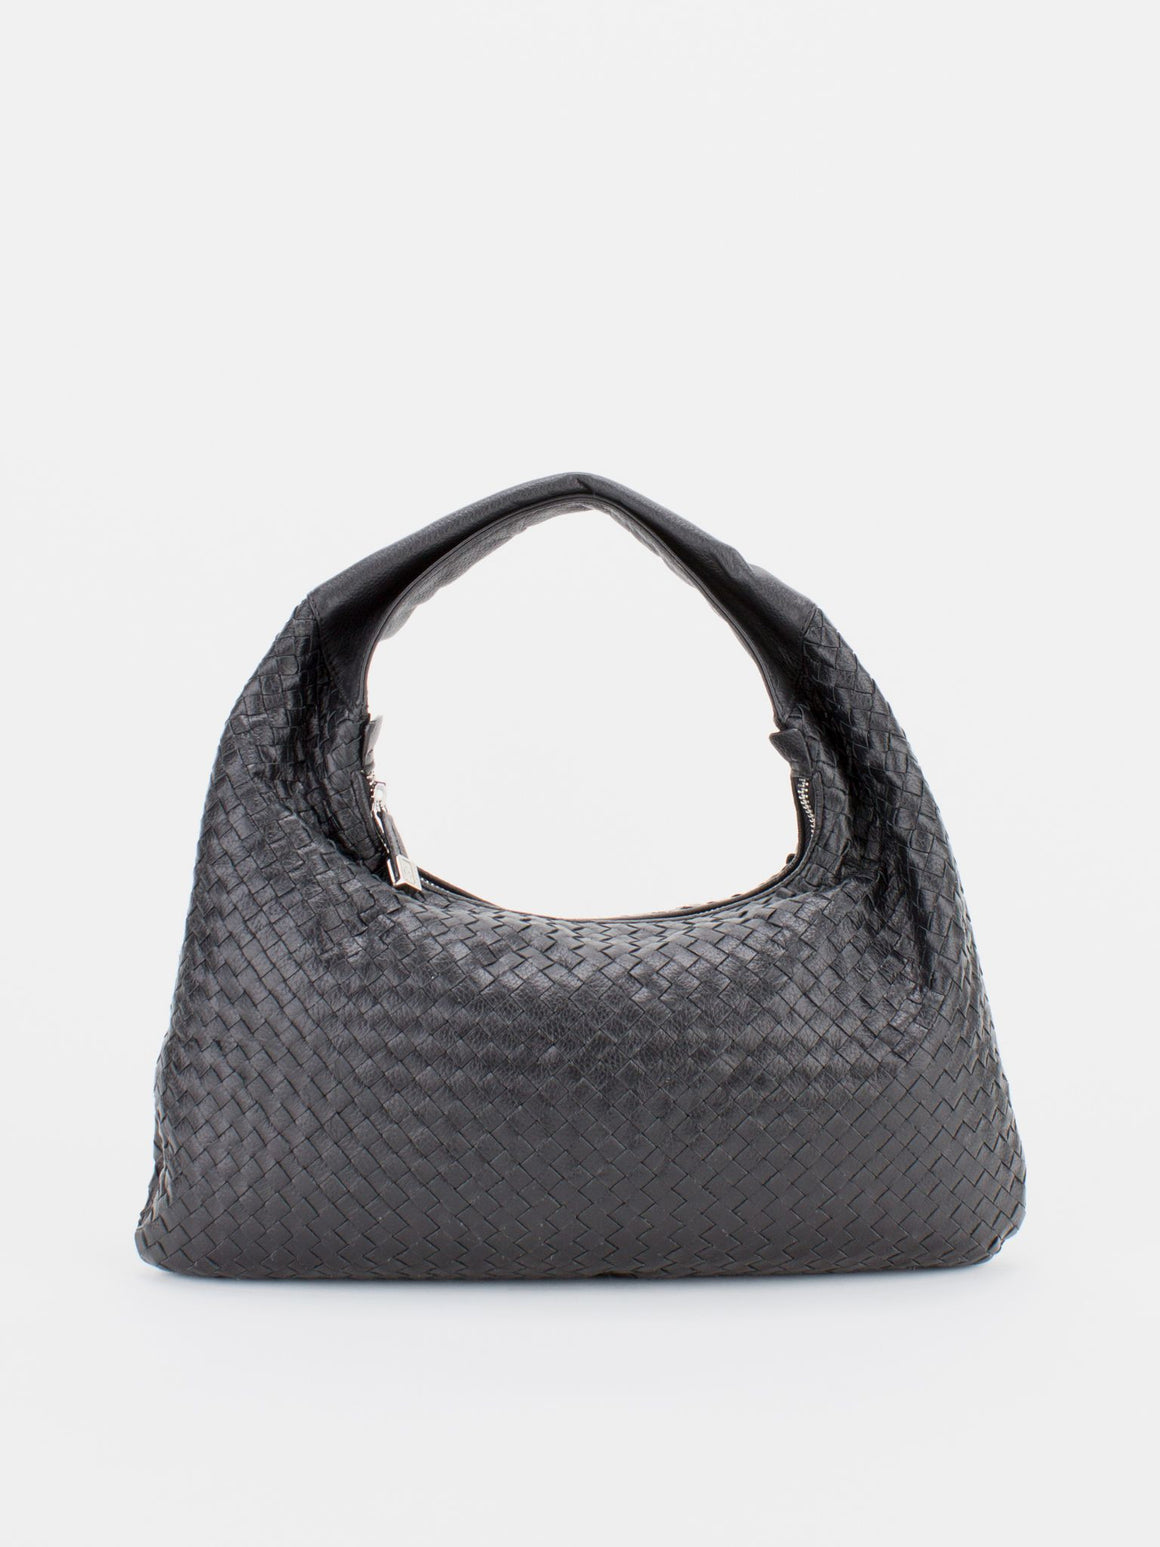 DANA Woven Leather Hobo - Black